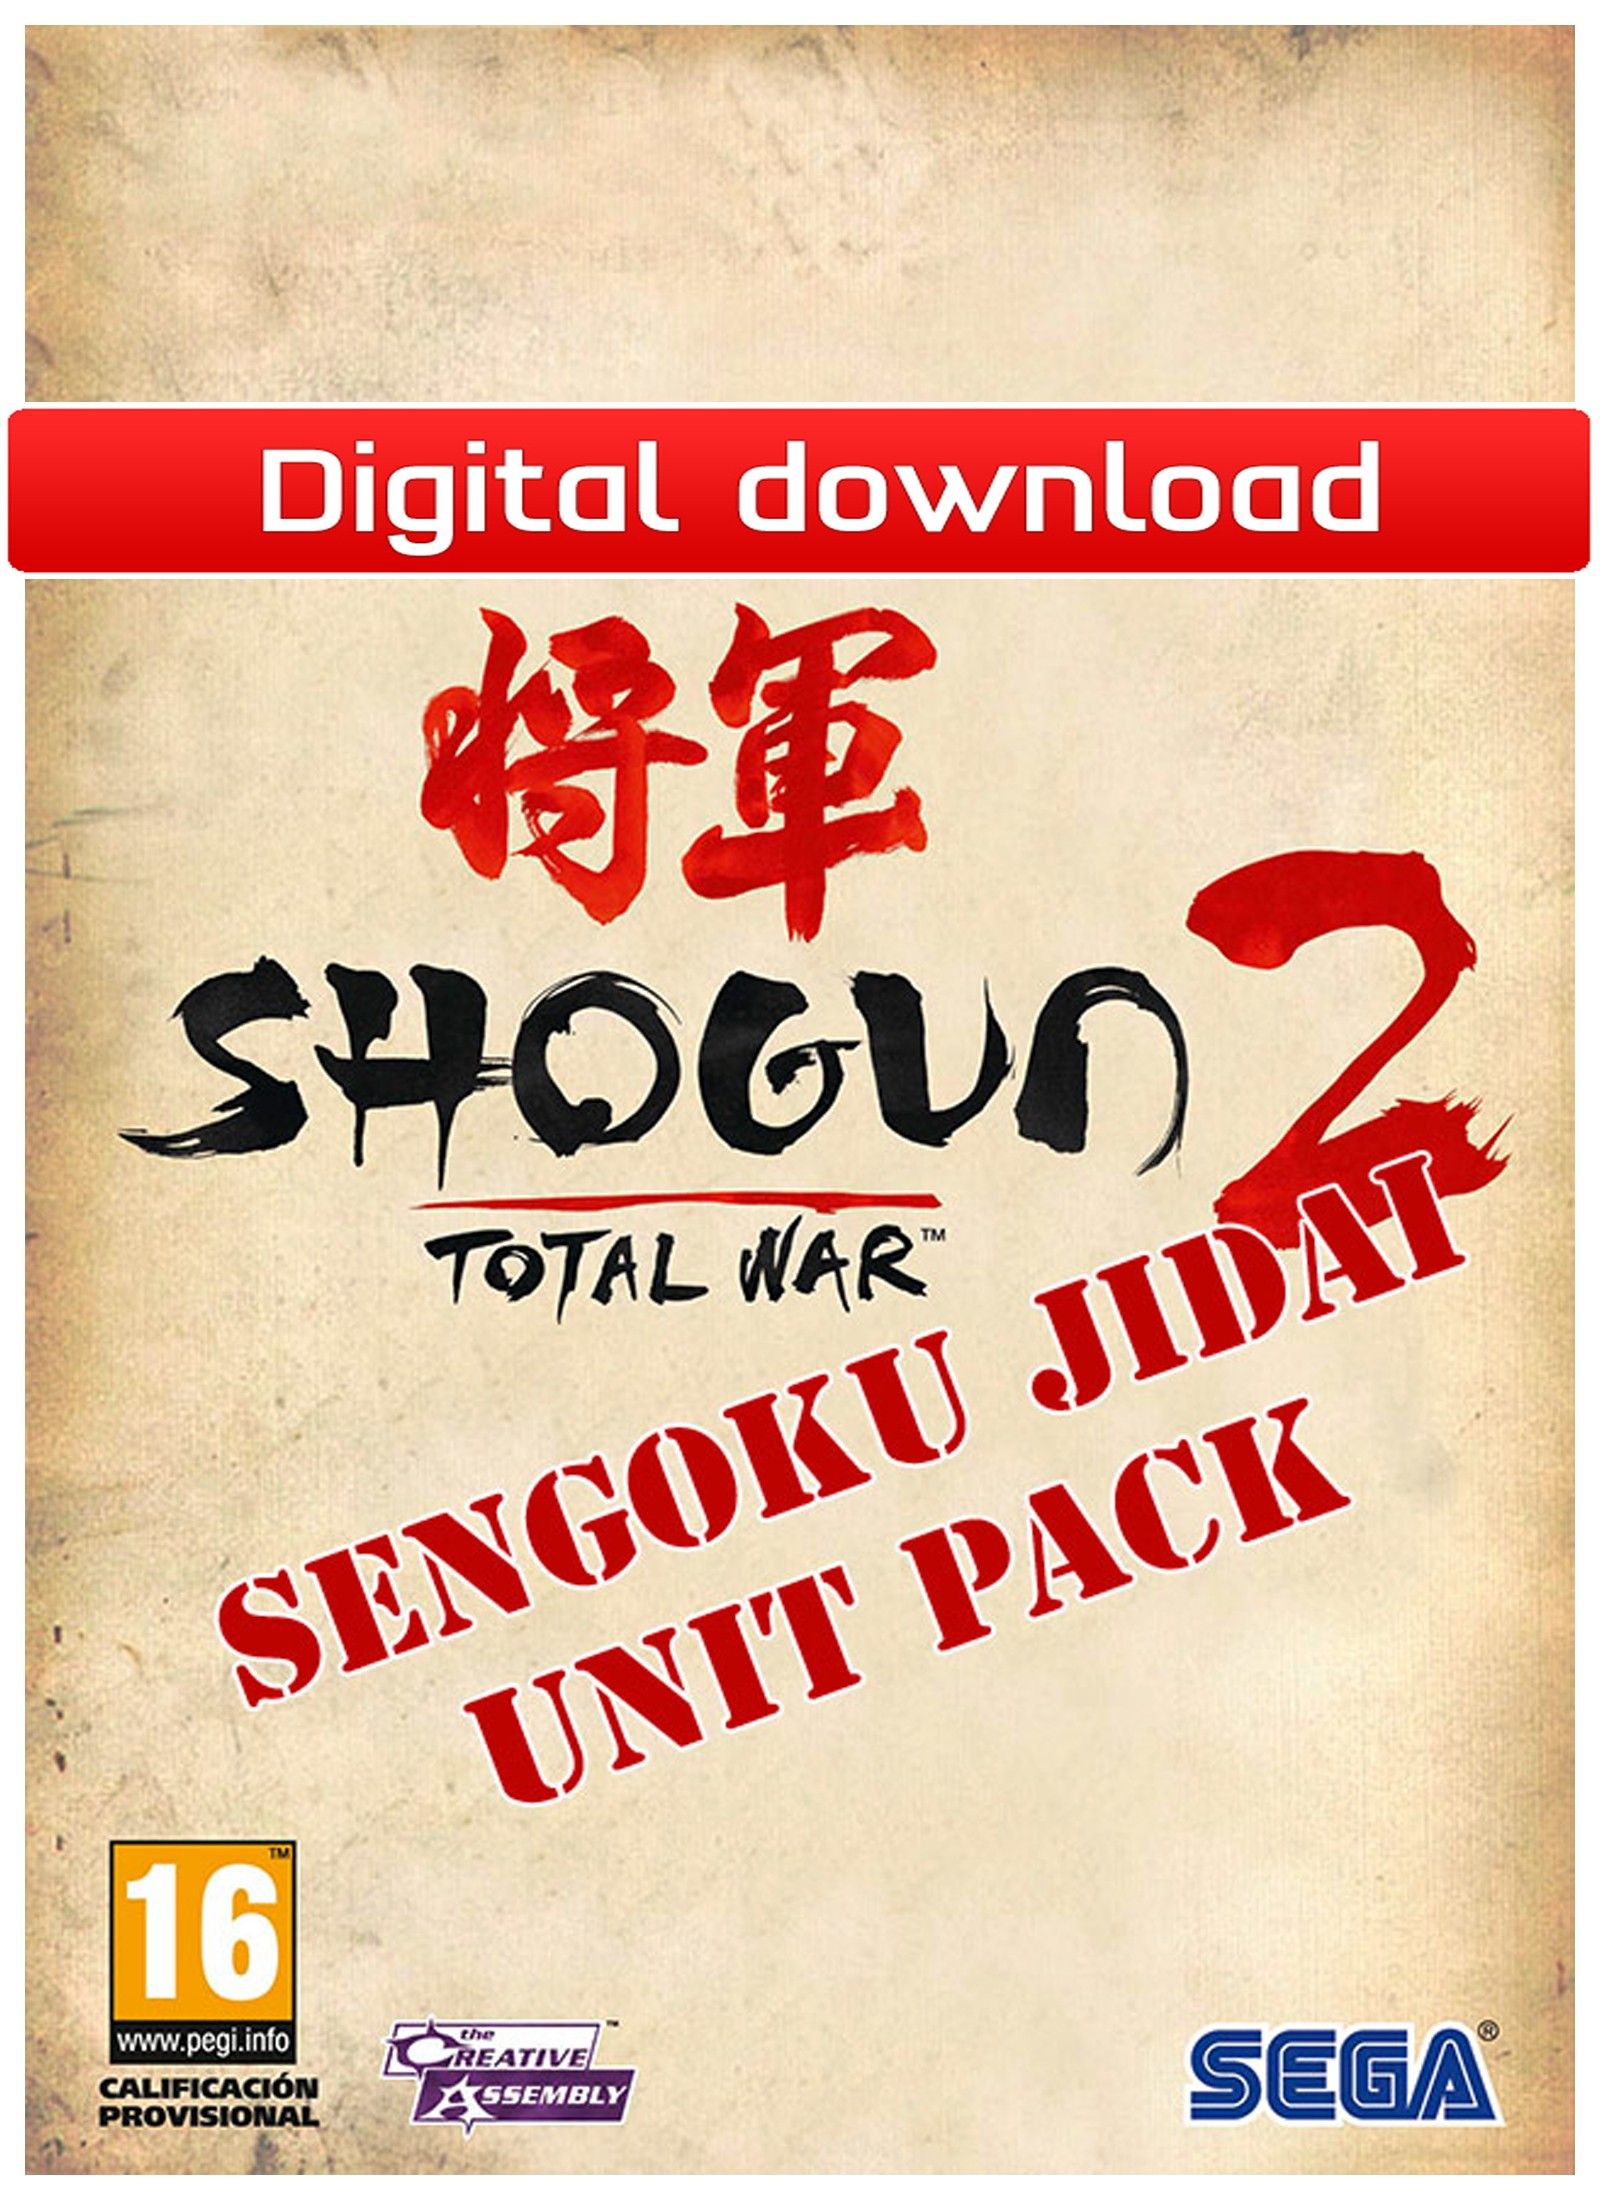 27556 : Total War: Shogun 2: Sengoku Jidai UP(PC nedlastning)